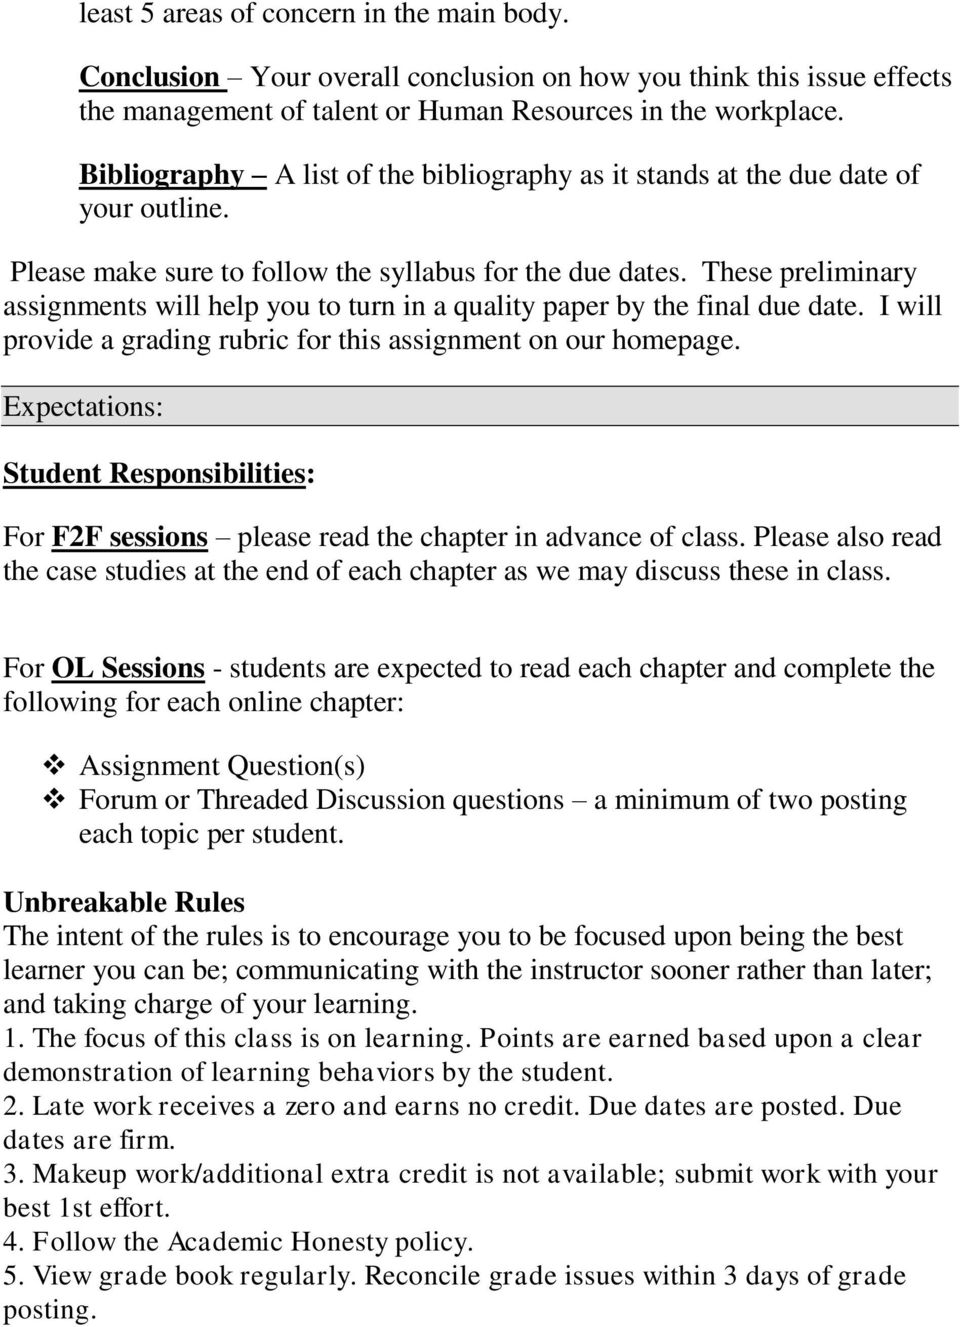 These preliminary assignments will help you to turn in a quality paper by the final due date. I will provide a grading rubric for this assignment on our homepage.